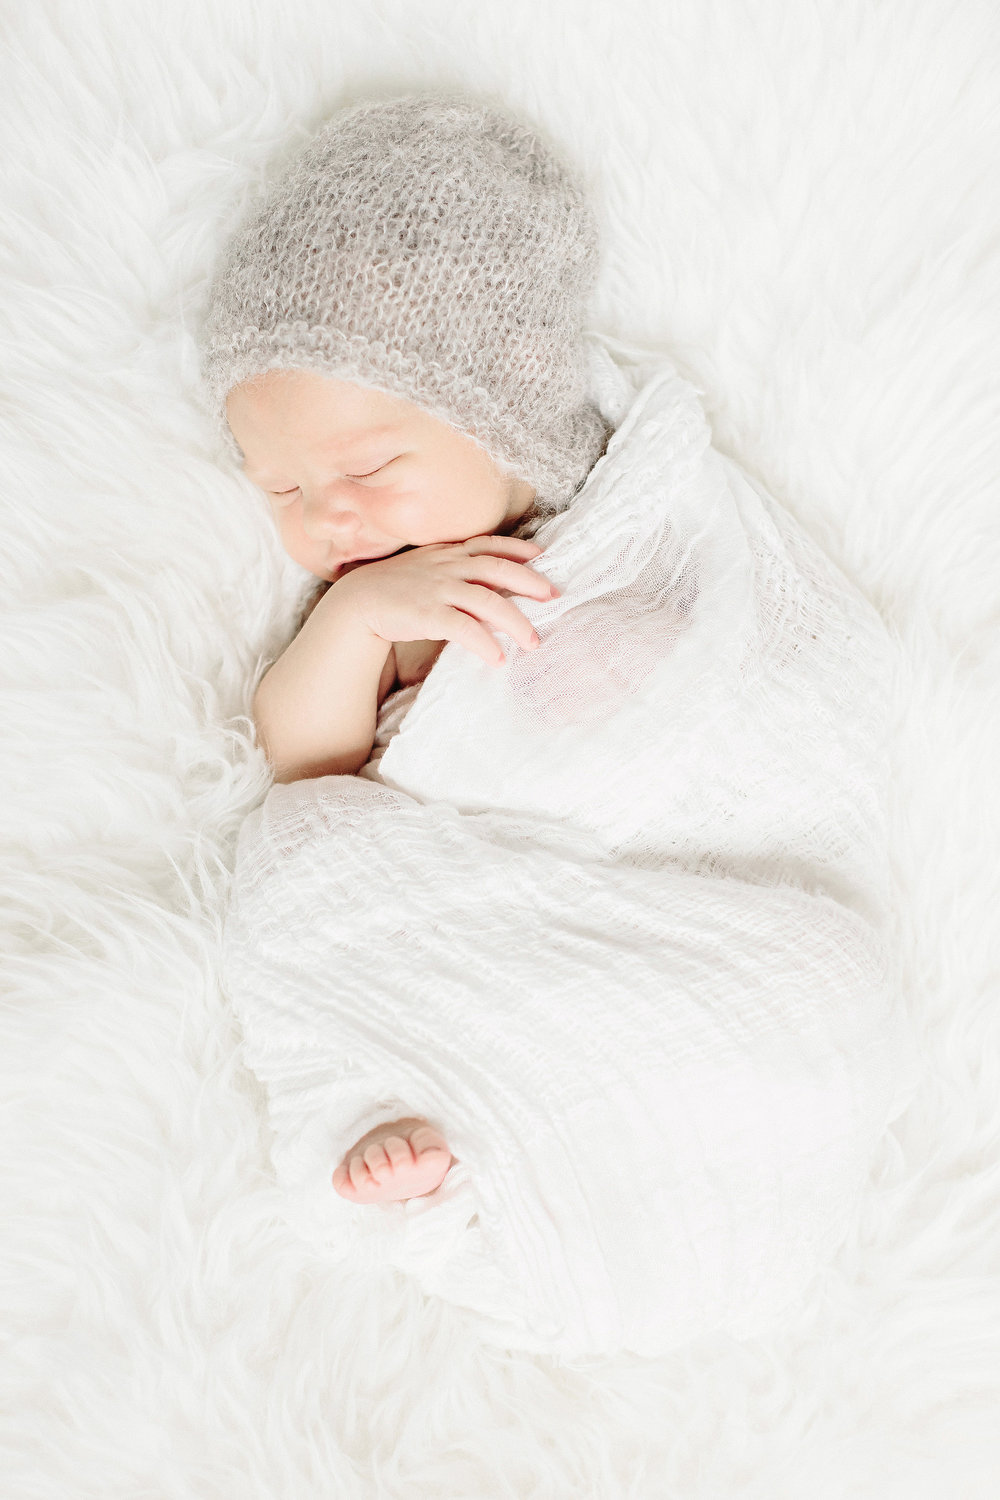 Sleeping Baby in Gray Knit Hat | Cassie Schott Photography